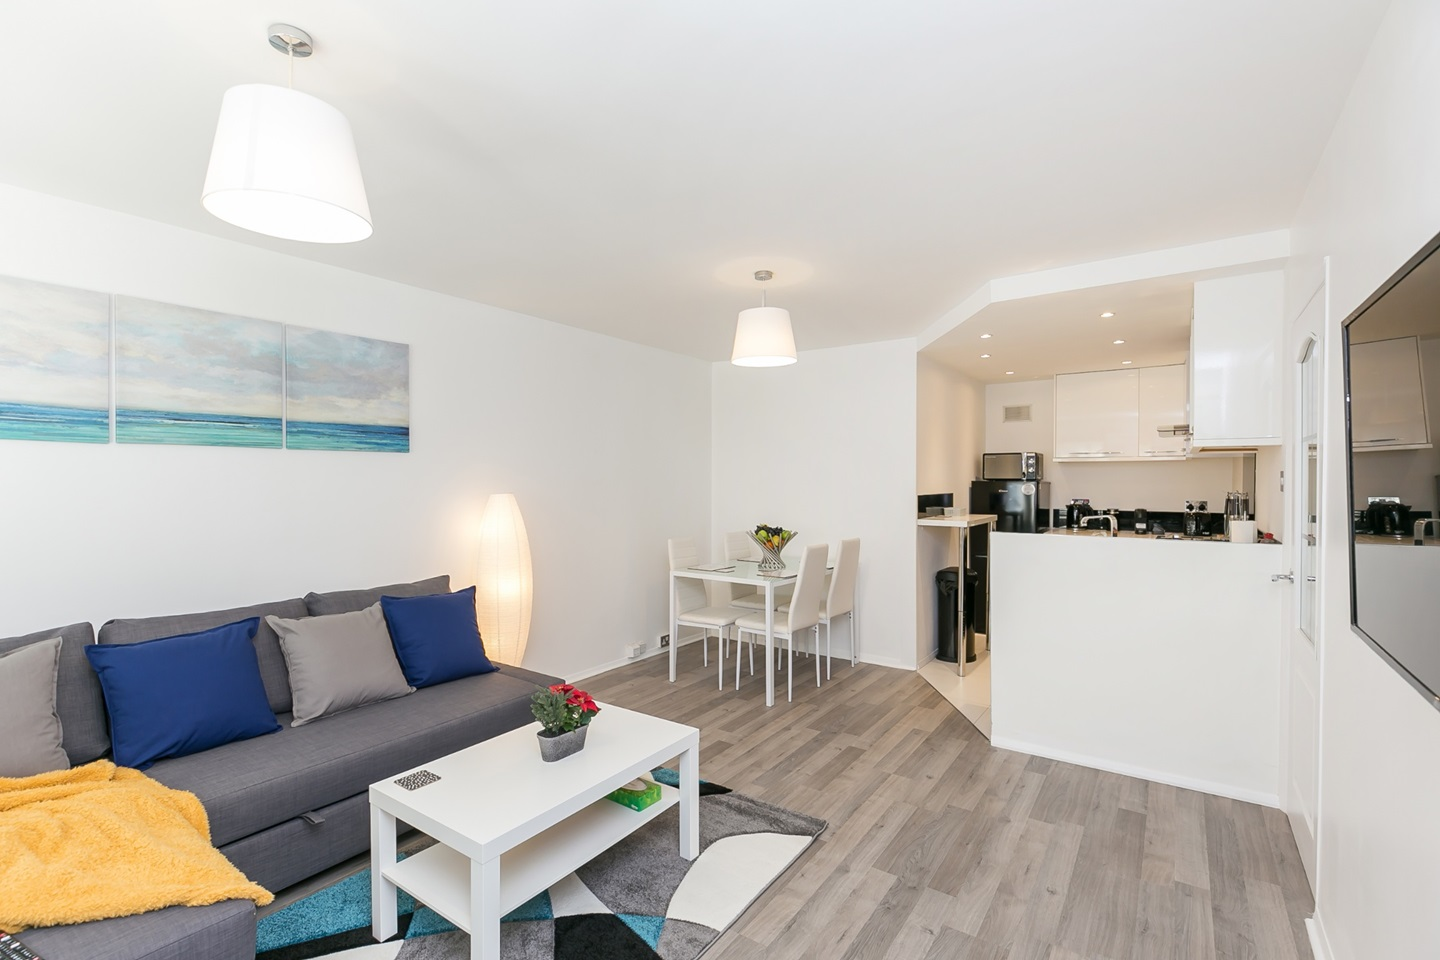 Croydon - 1 Bed Flat, Renown Close, CR0 - To Rent Now for ...